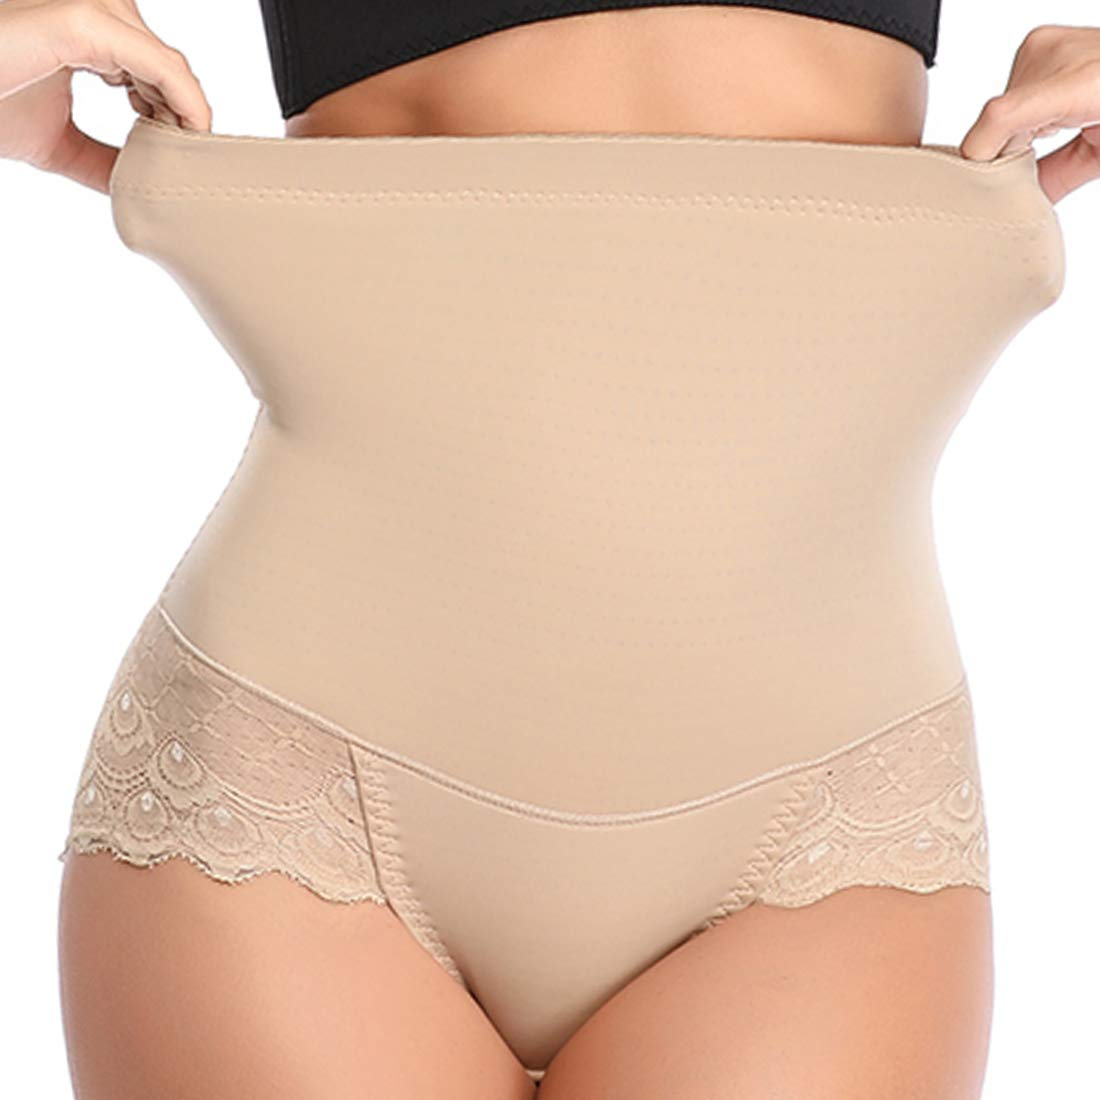 Shapewear Panties for Women Tummy Control High Waist Lace Briefs